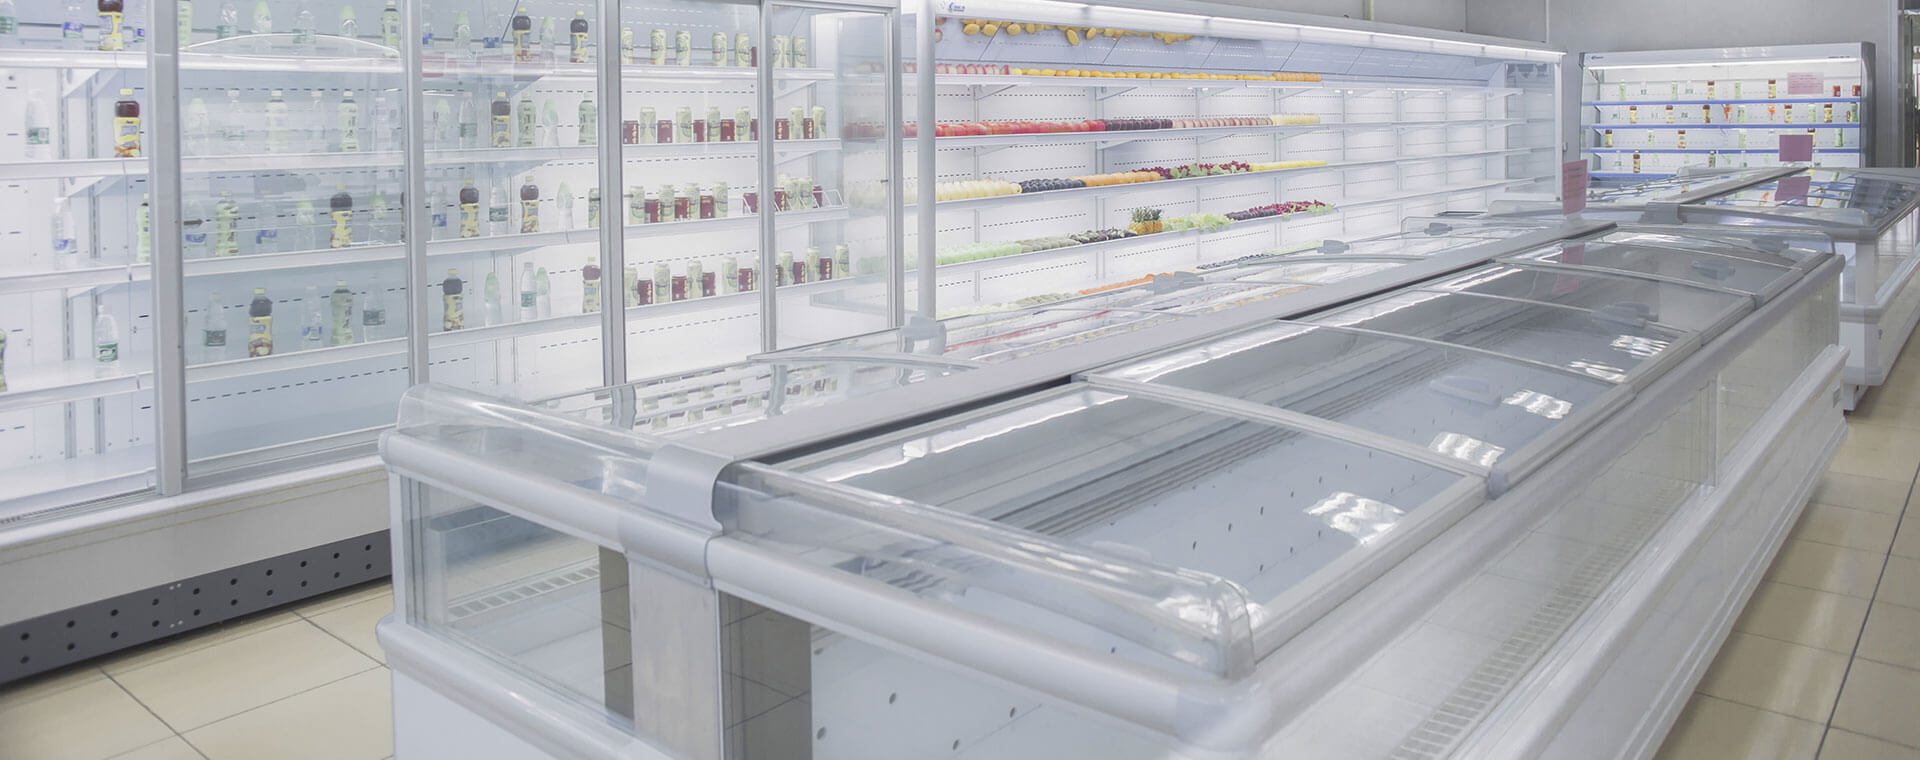 fridge, upright cooler, island freezer, multideck chiller, supermarket refrigerator